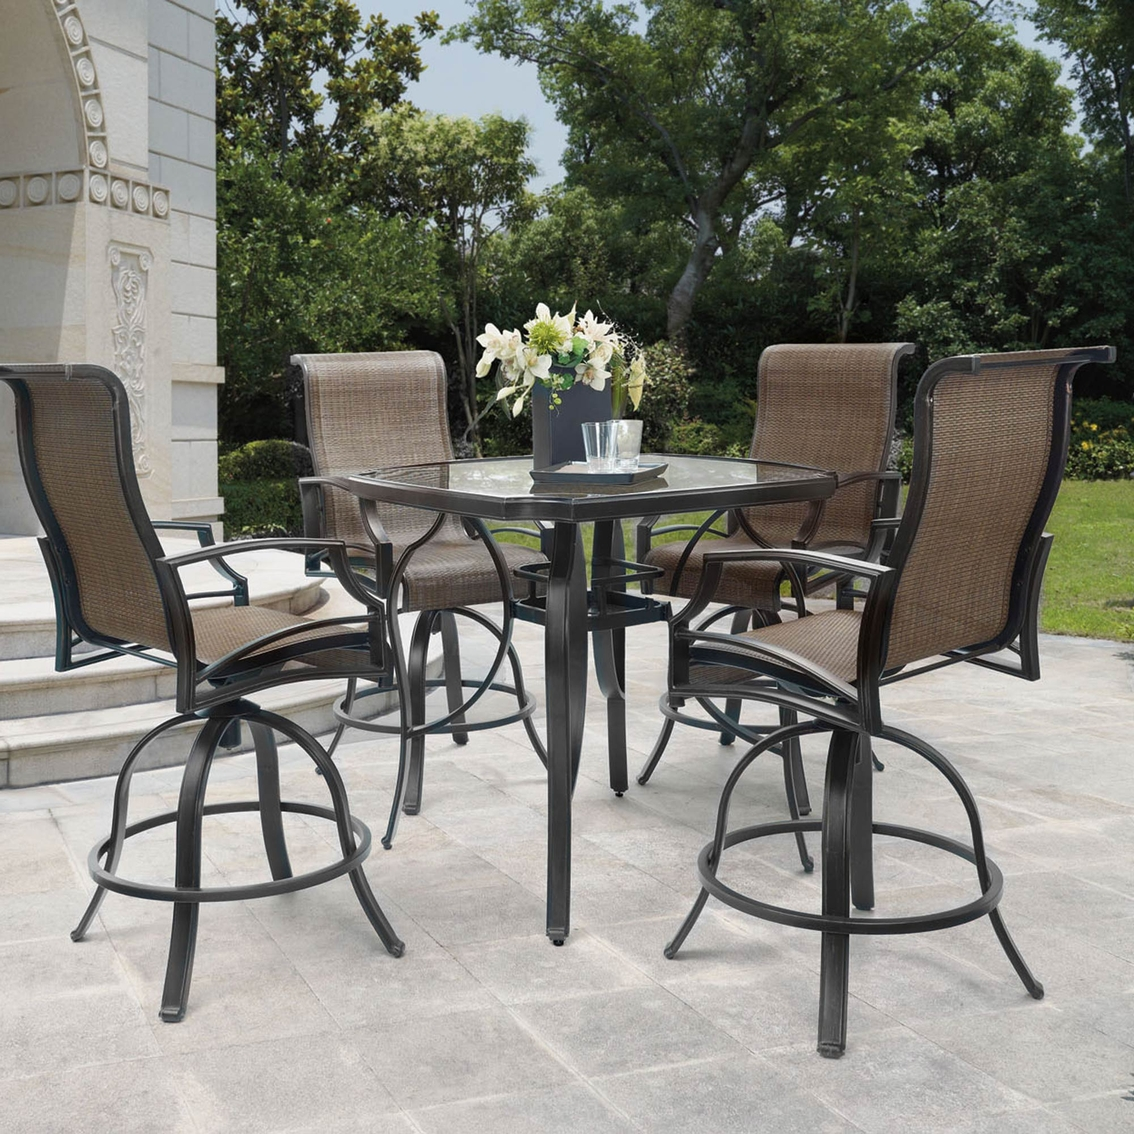 Balcony Height Patio Chairs Patio Logic Garden Point 5 Pc Balcony Height Dining Set